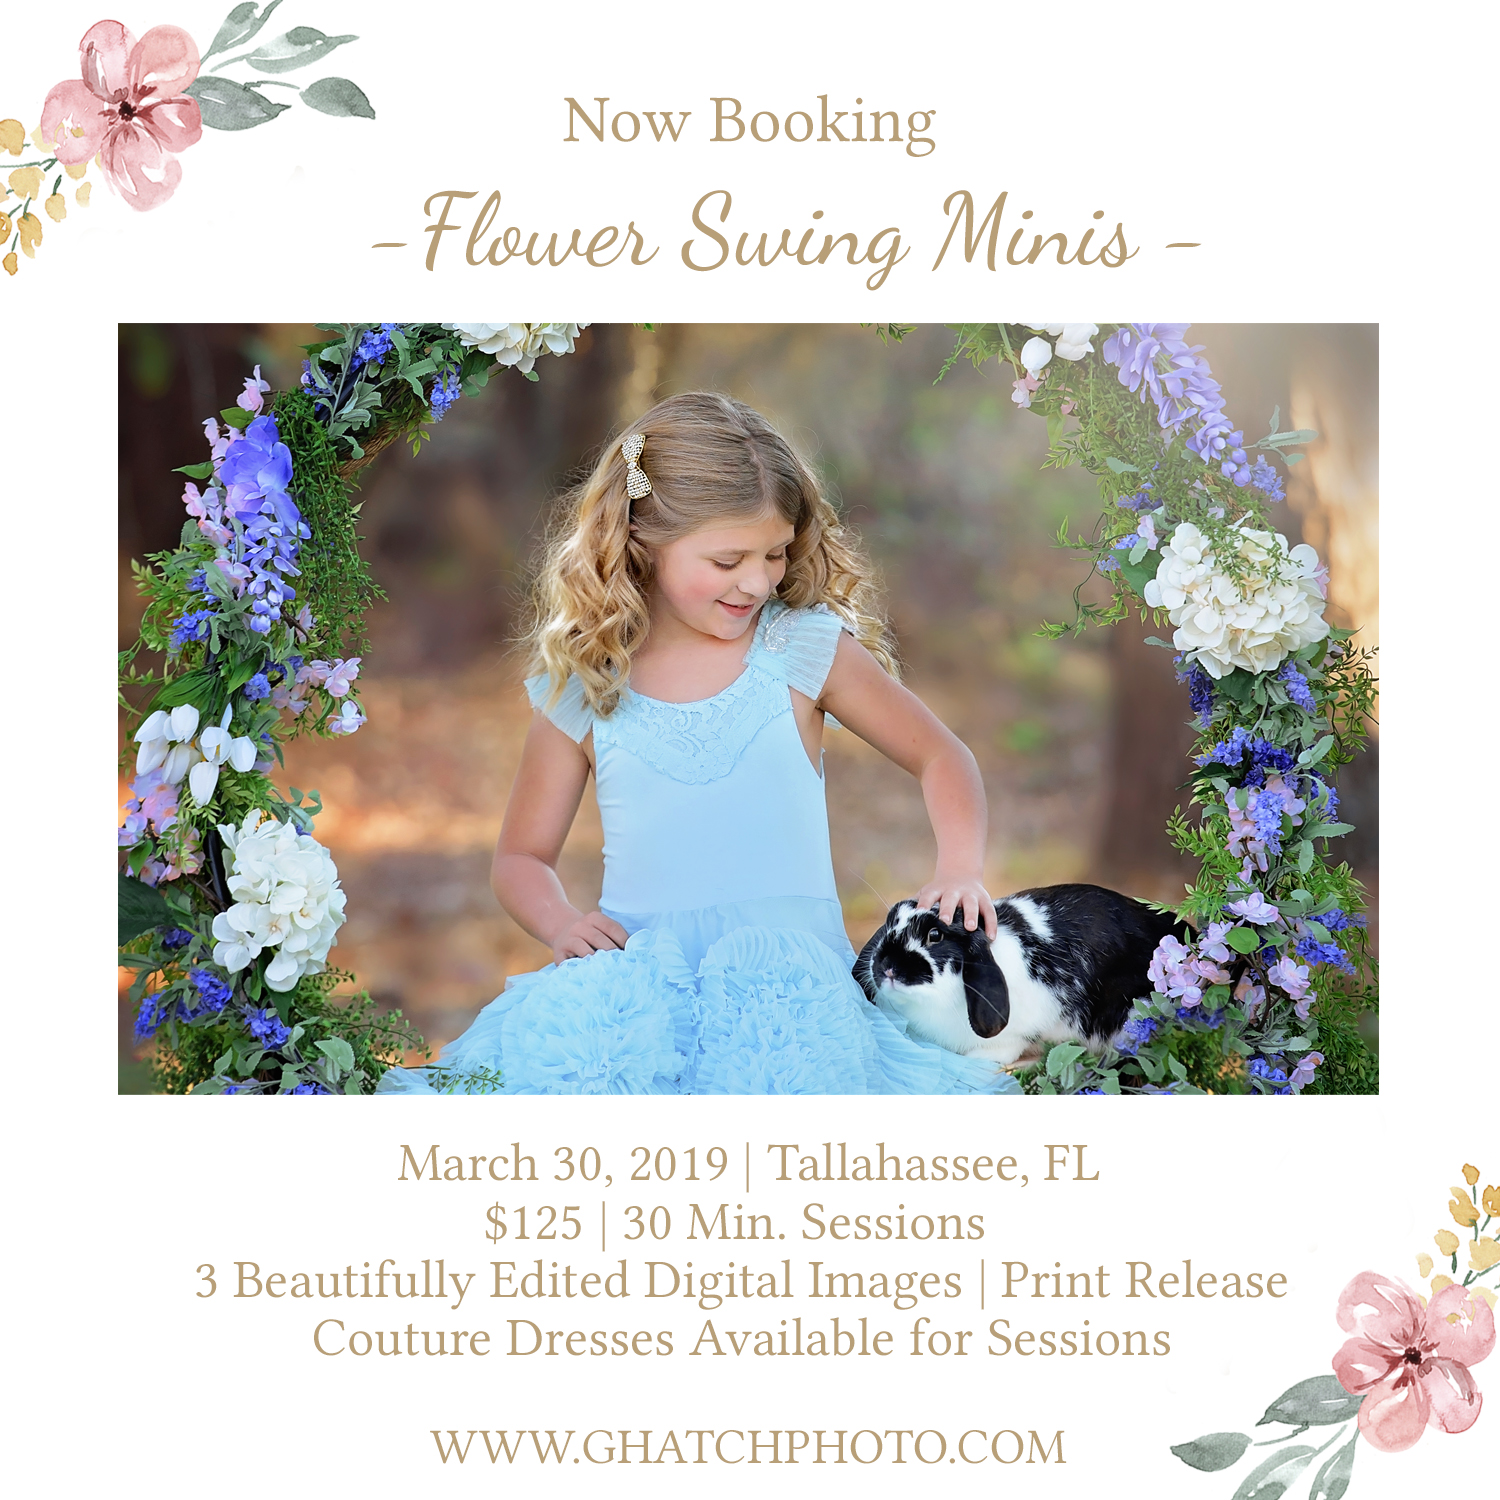 Tallahassee Flower Swing Minis! - Spring is right around the corner! Last year we sold out for these. CLICK HERE TO SAVE YOUR SPOT! SOLD OUT